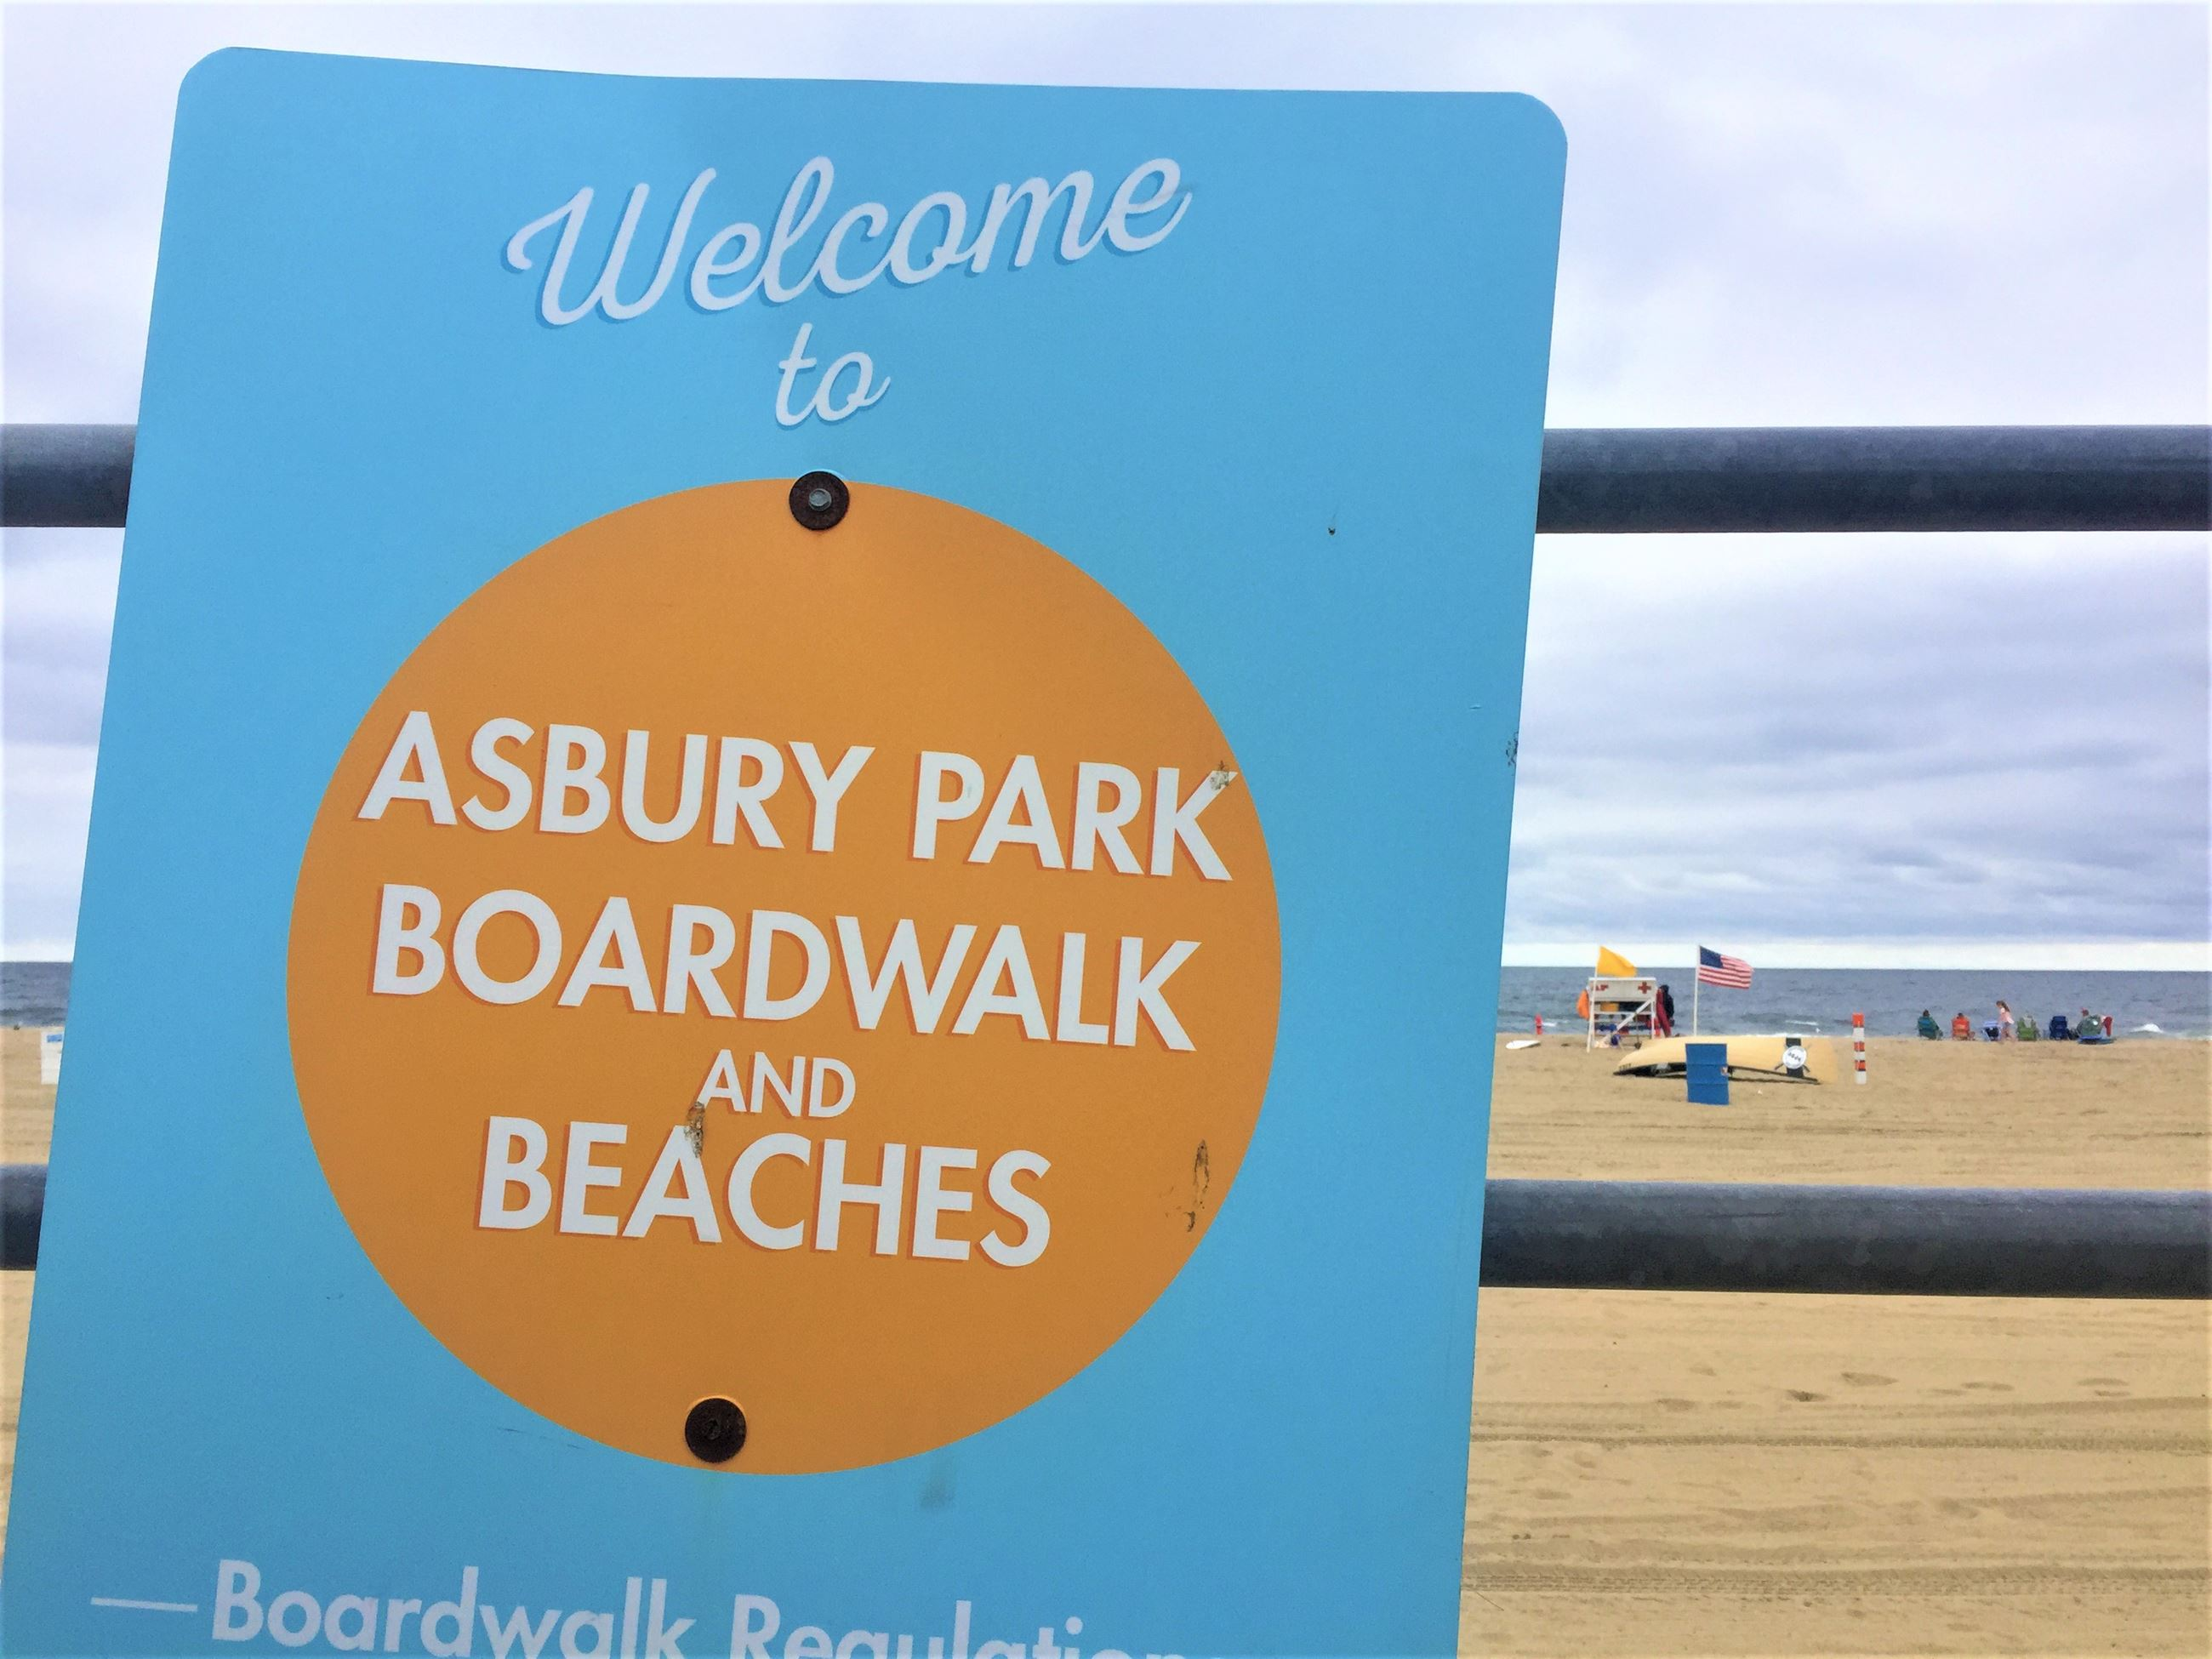 Asbury Park Boardwalk and Beaches Sign